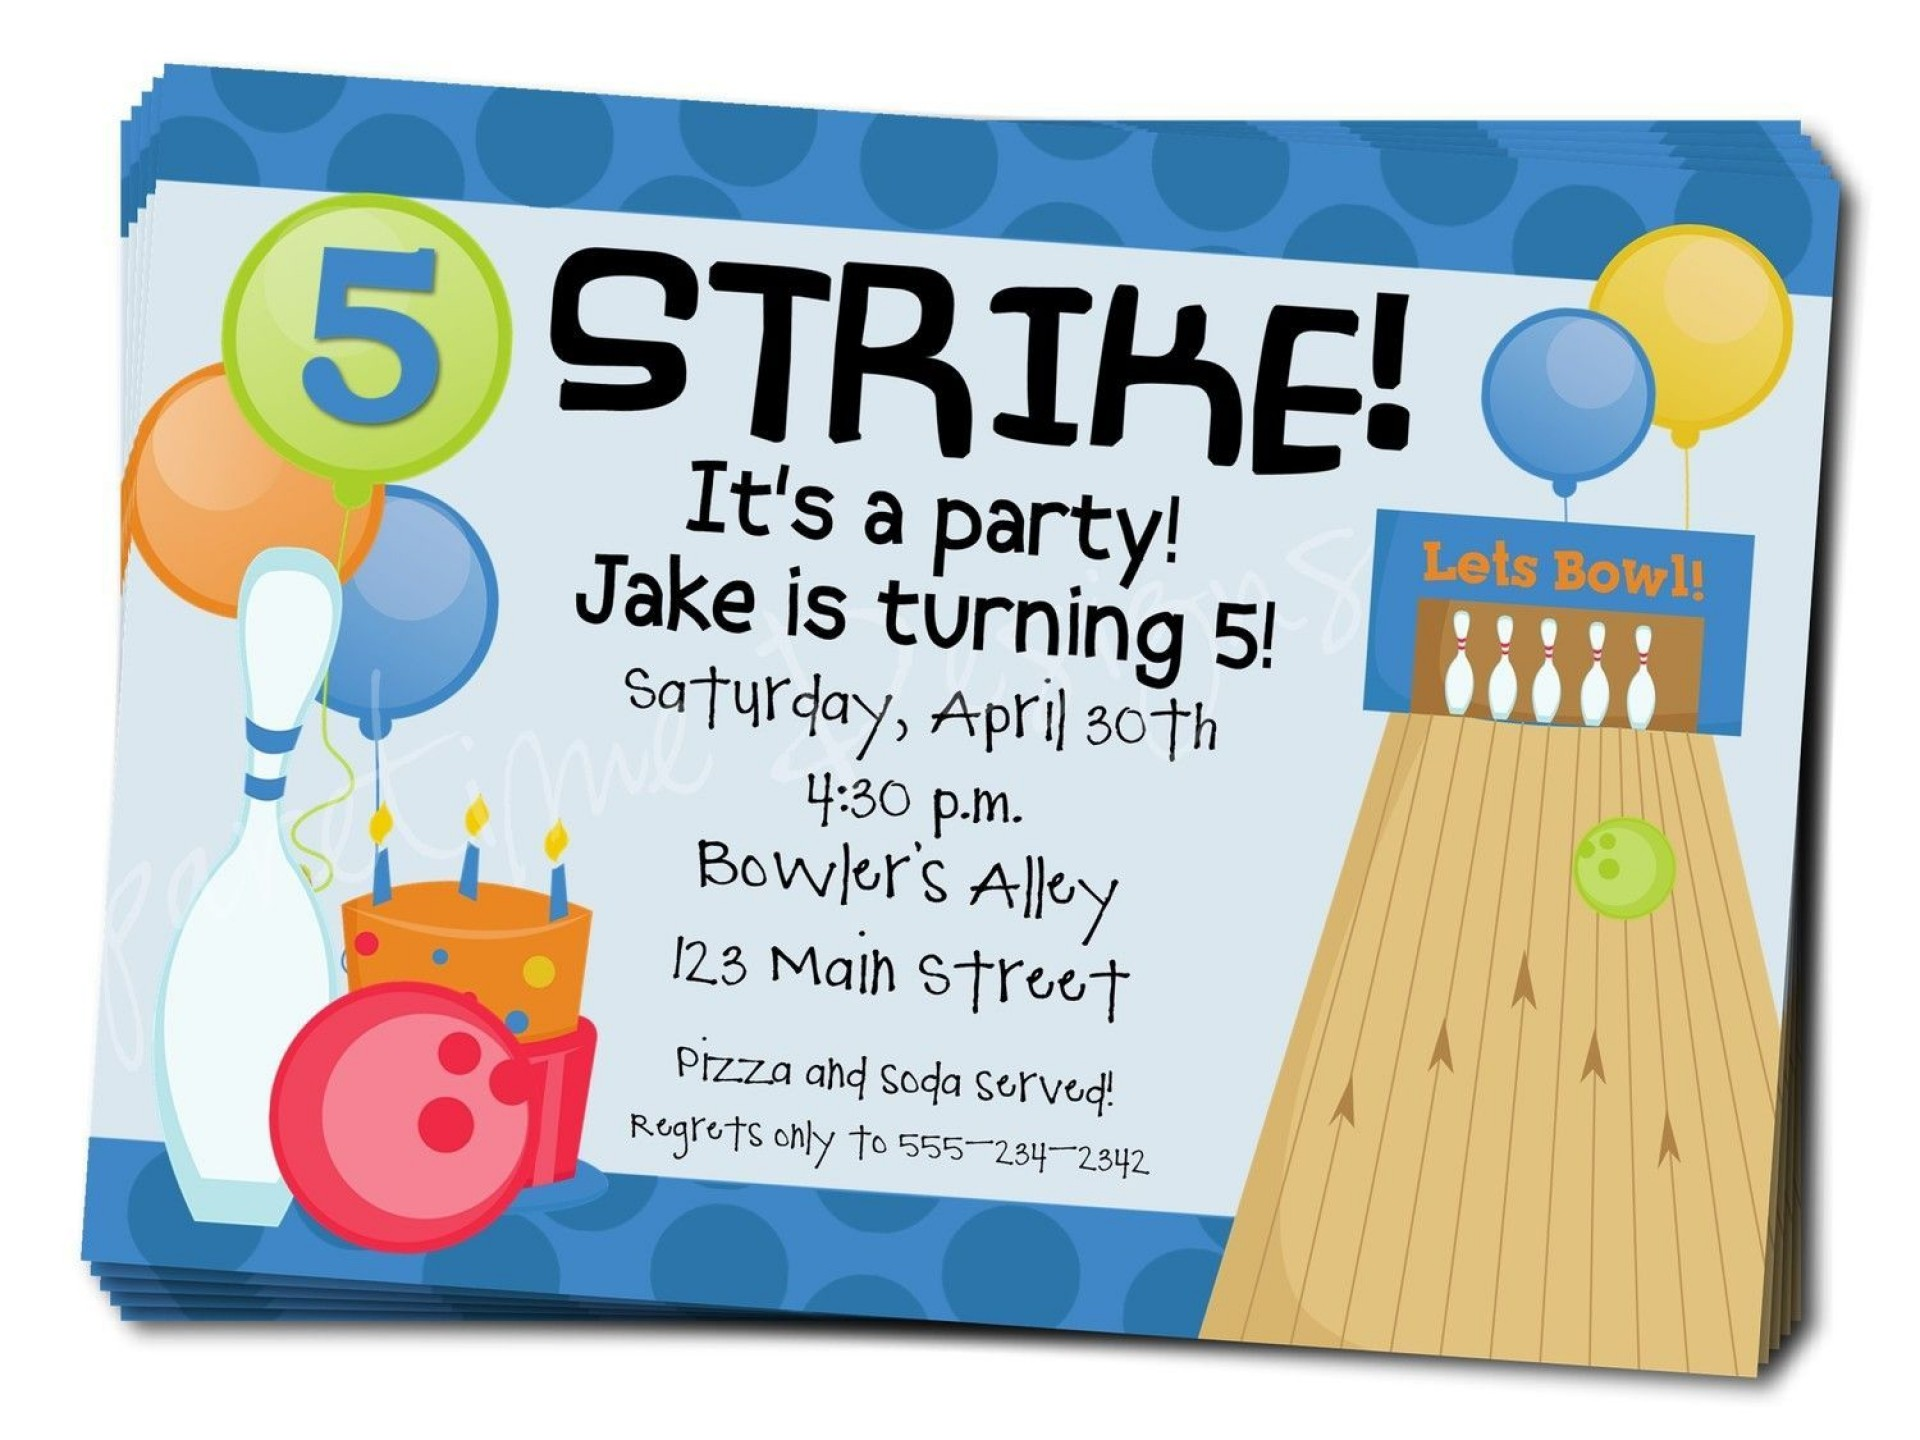 006 Magnificent Bowling Party Invite Printable Free Highest Quality  Birthday Invitation1920